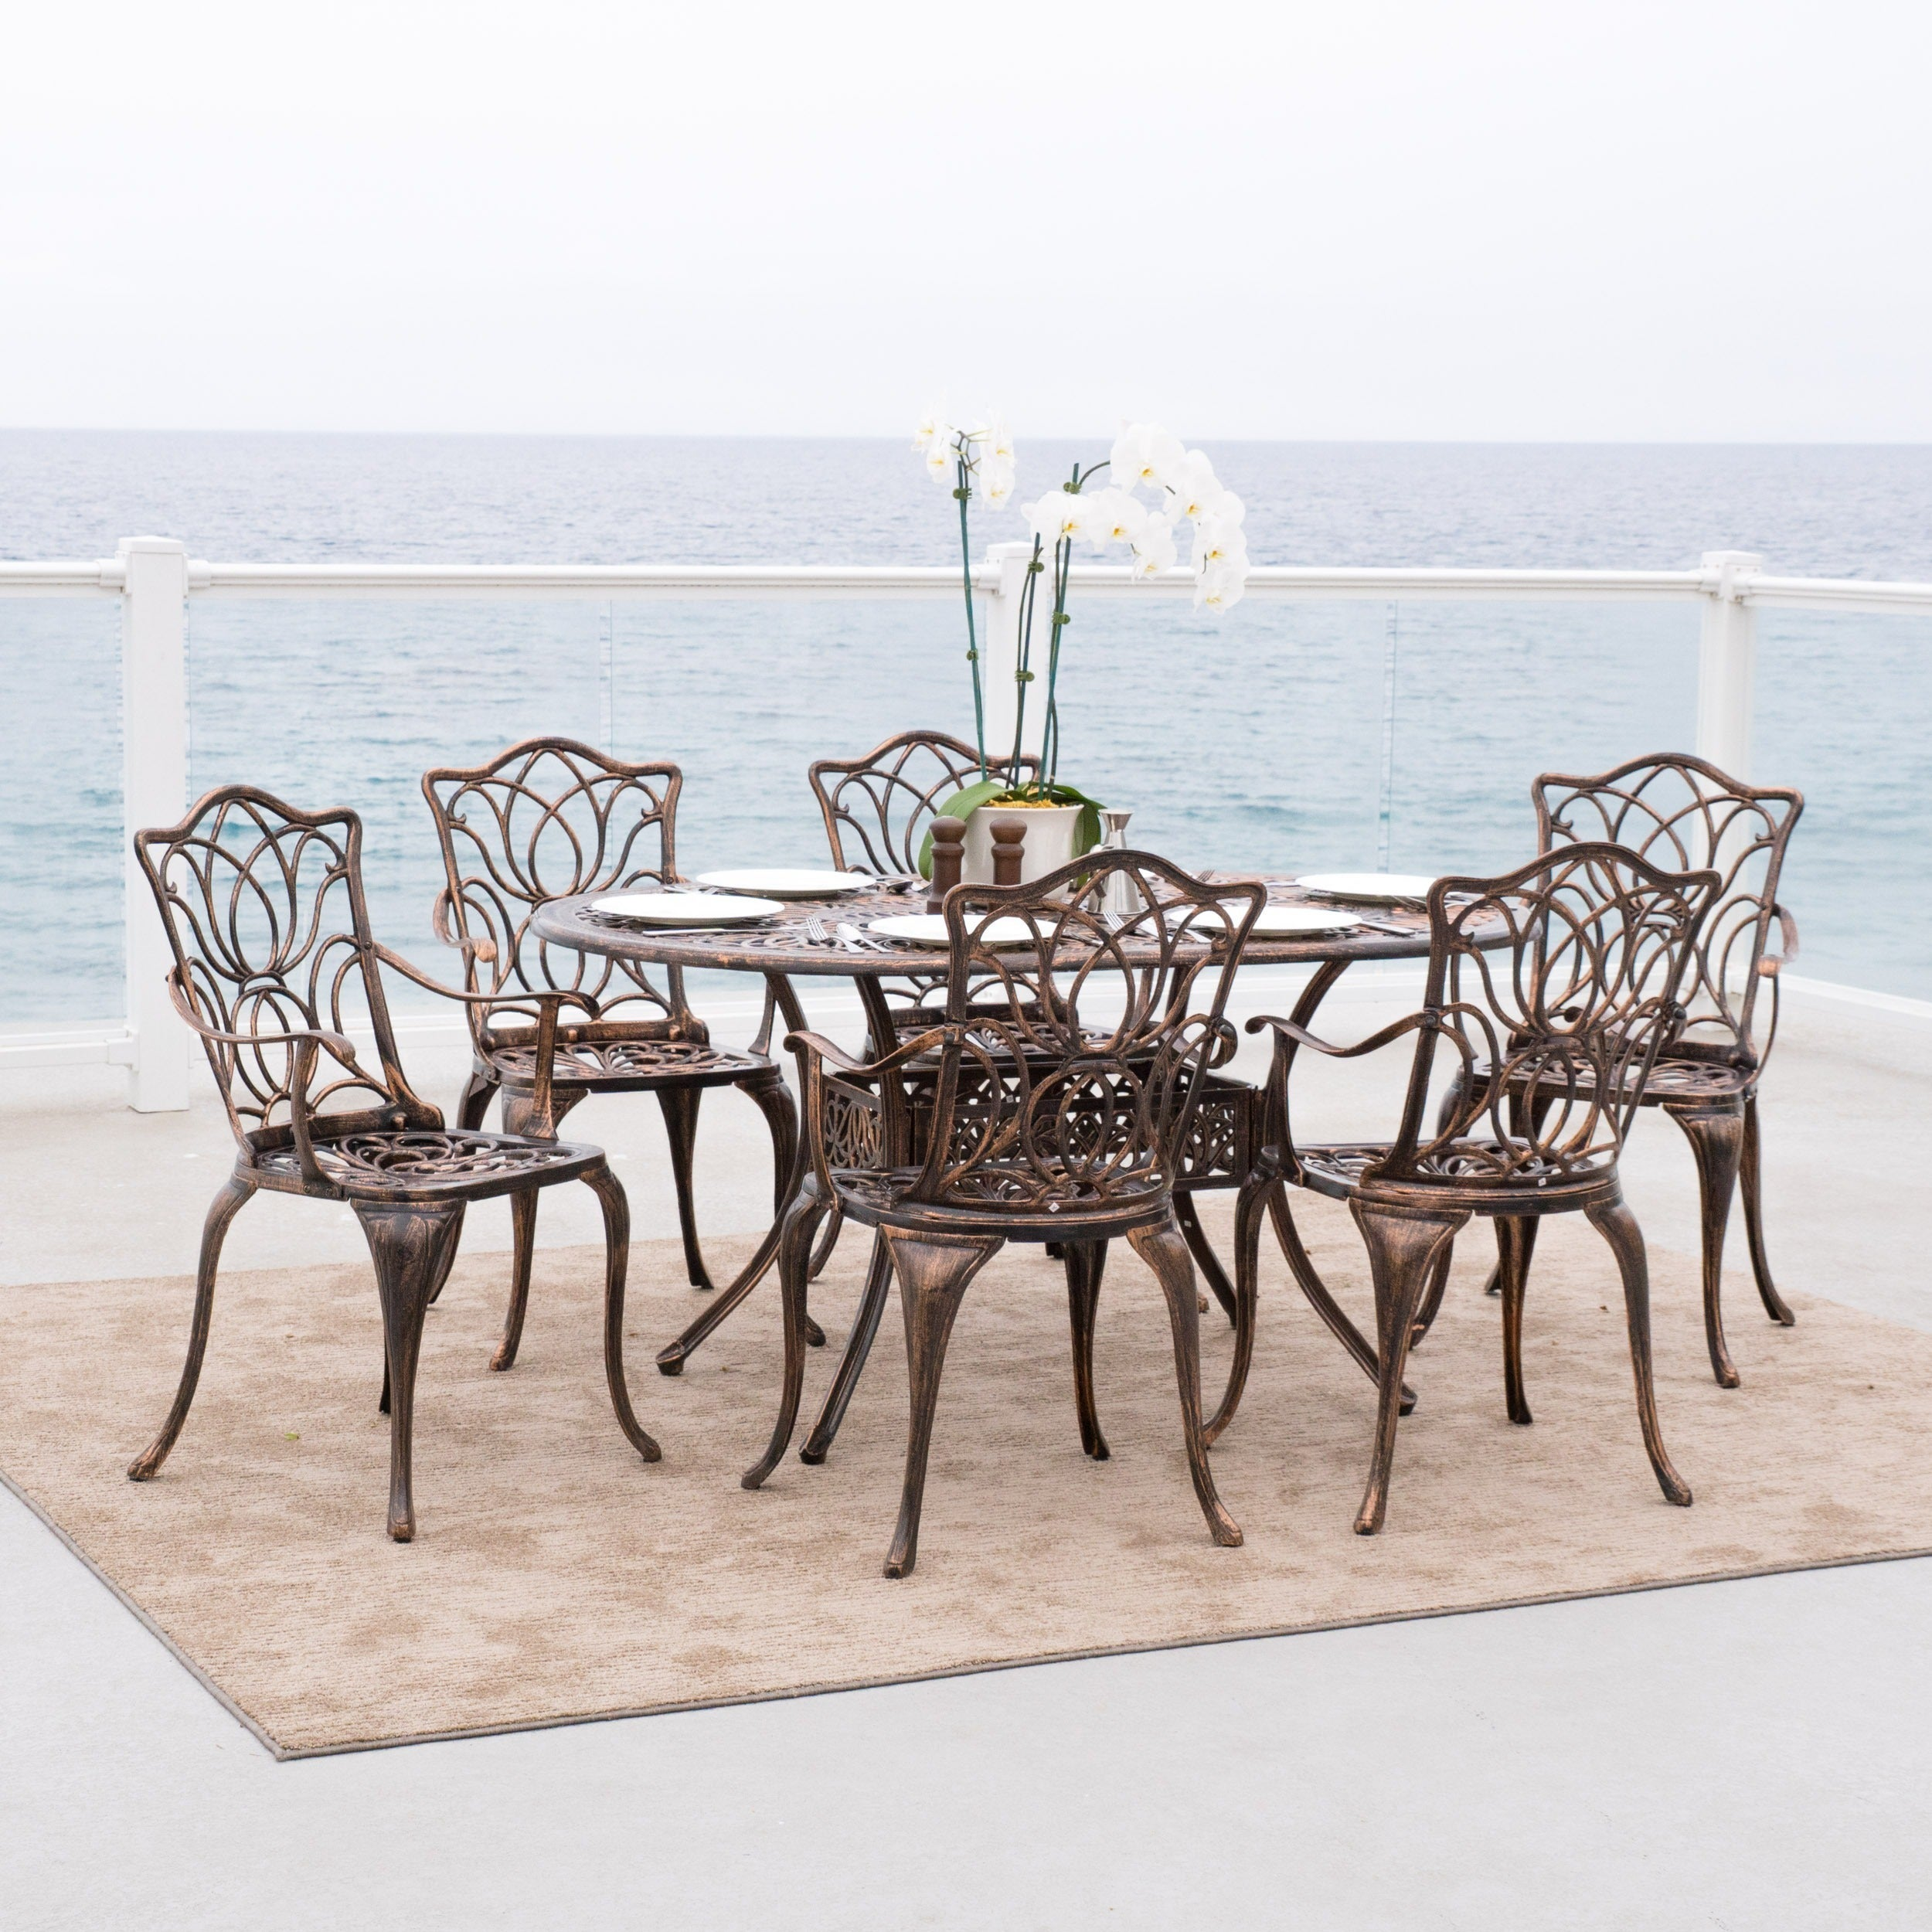 Haitian Outdoor Cast Aluminum 7 Piece Dining Set By Christopher Knight Home    Free Shipping Today   Overstock   14108574